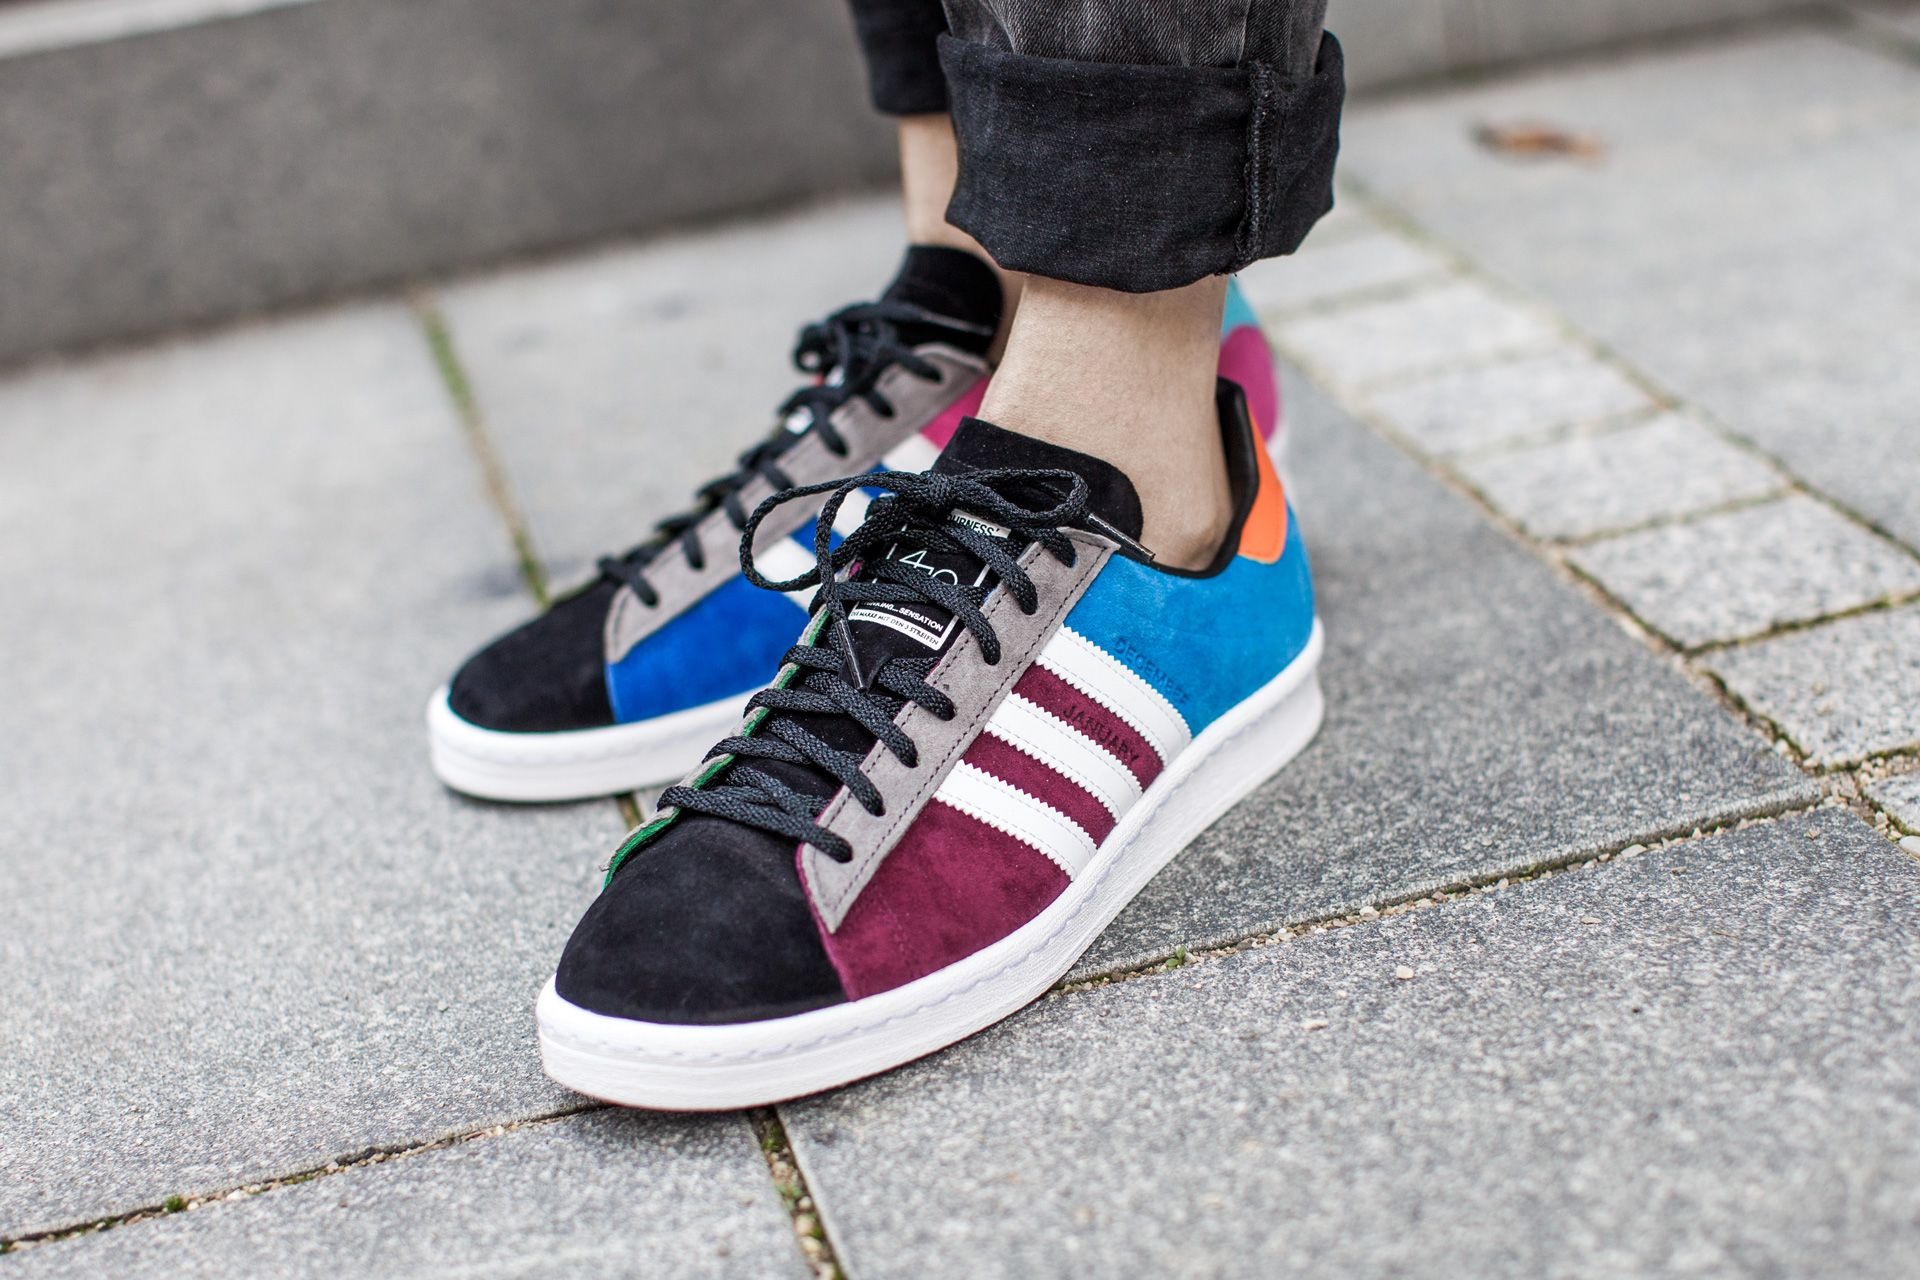 new appearance reliable quality footwear ADIDAS ORIGINALS CAMPUS 80S THE FOURNESS 'JAM HOME MADE' BRBLUE ...